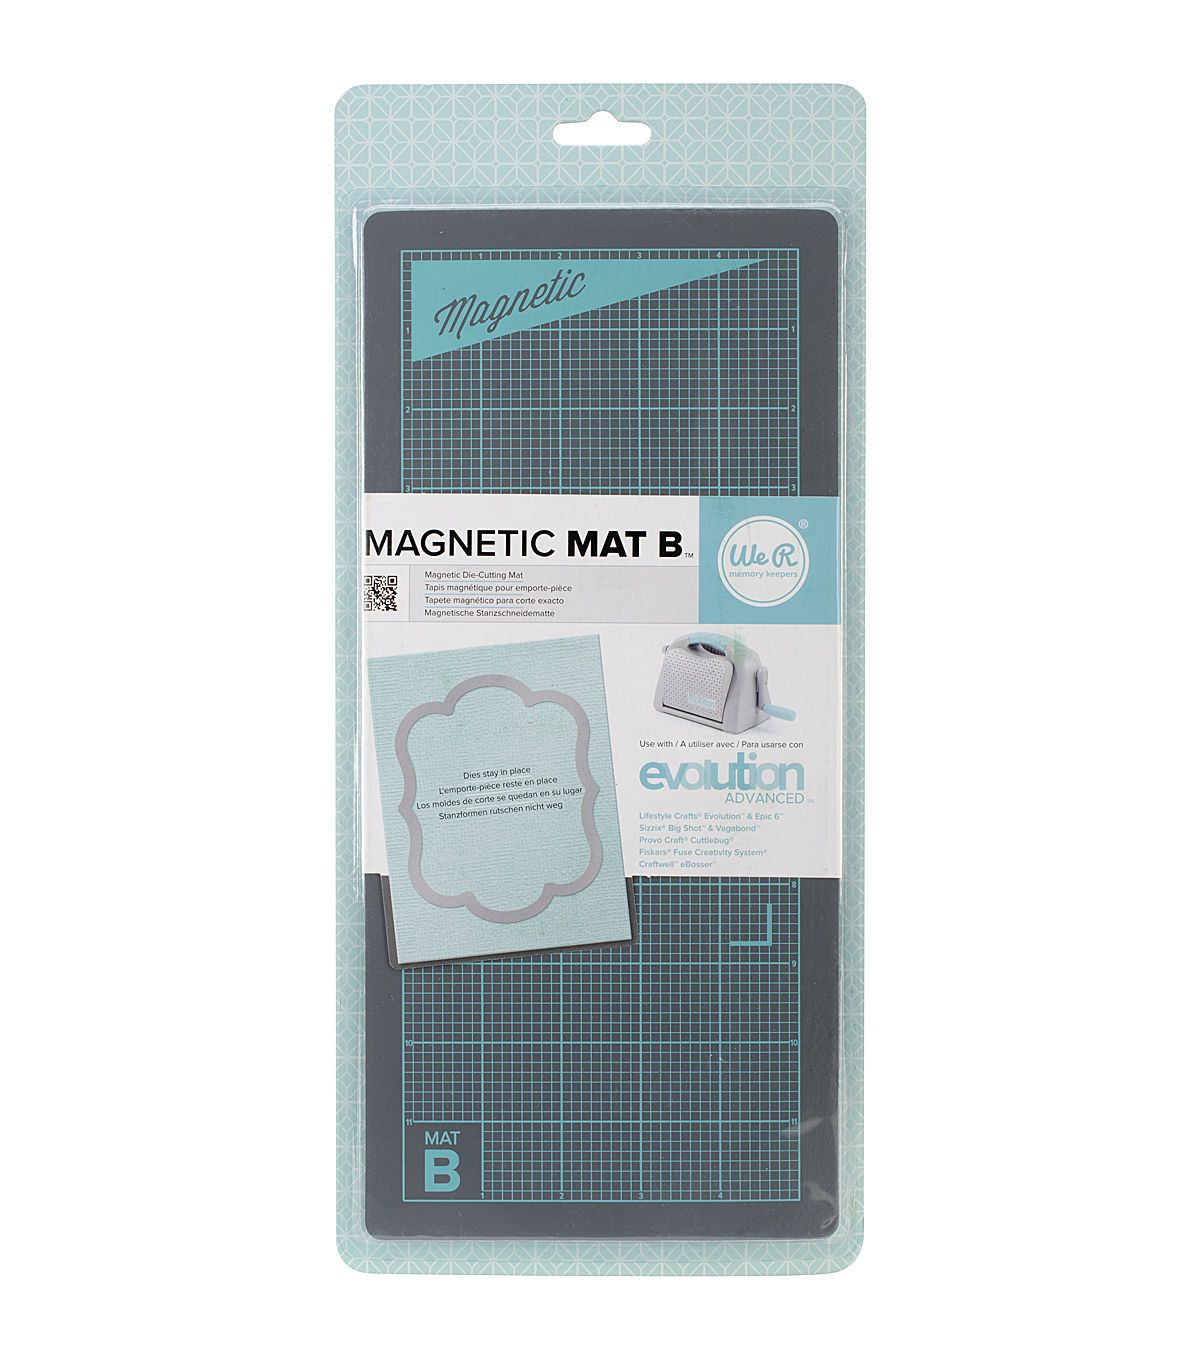 We R Memory Keepers Magnetic Mat B For Use With Evolution Advanced Products We R Memory Keepers Die Cut Machines Joanns Fabric Crafts